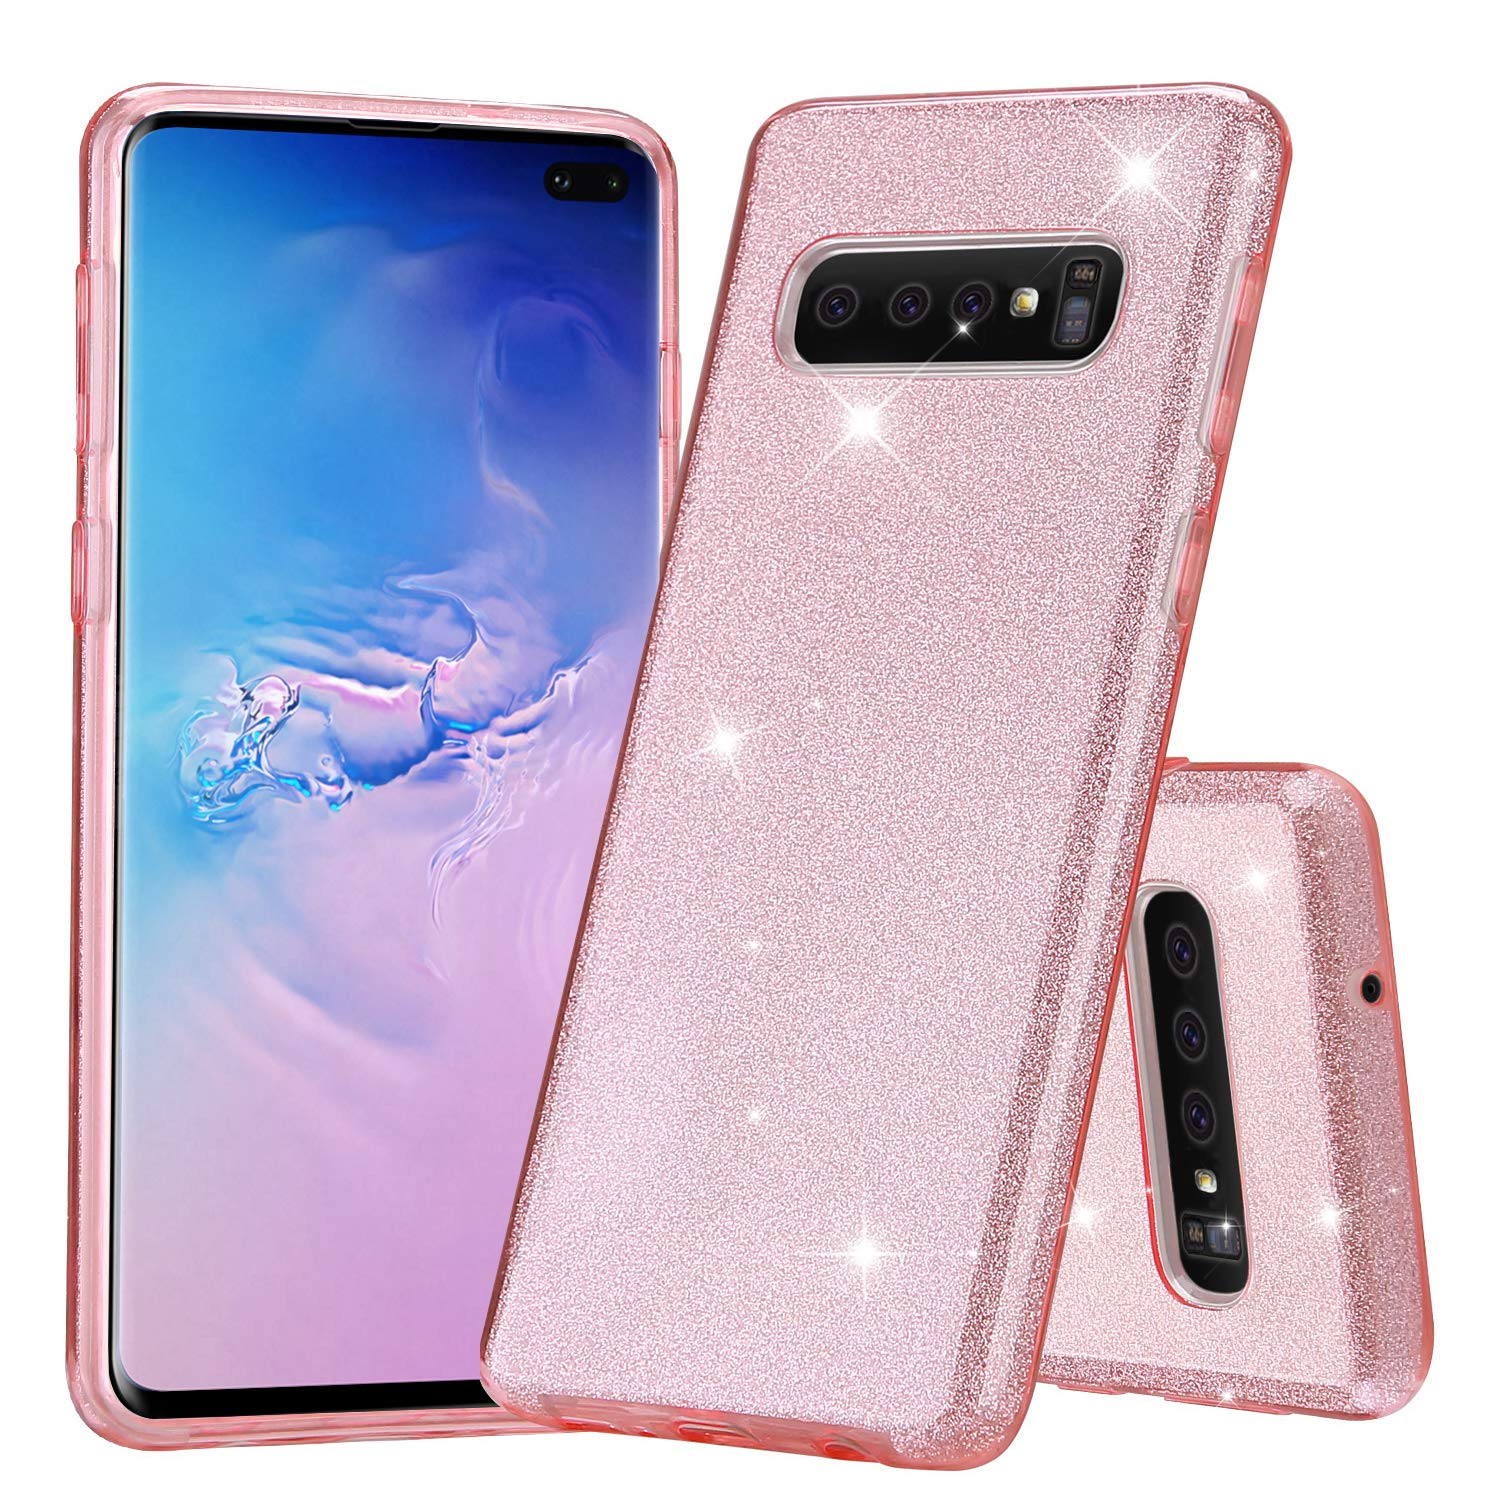 ProCase Galaxy S10 Plus Glitter Pink Case, Cute Sparkle Bling Luxury Soft Bumper Case Protective Cover (Supports Wireless Charging) for Girls Women ...